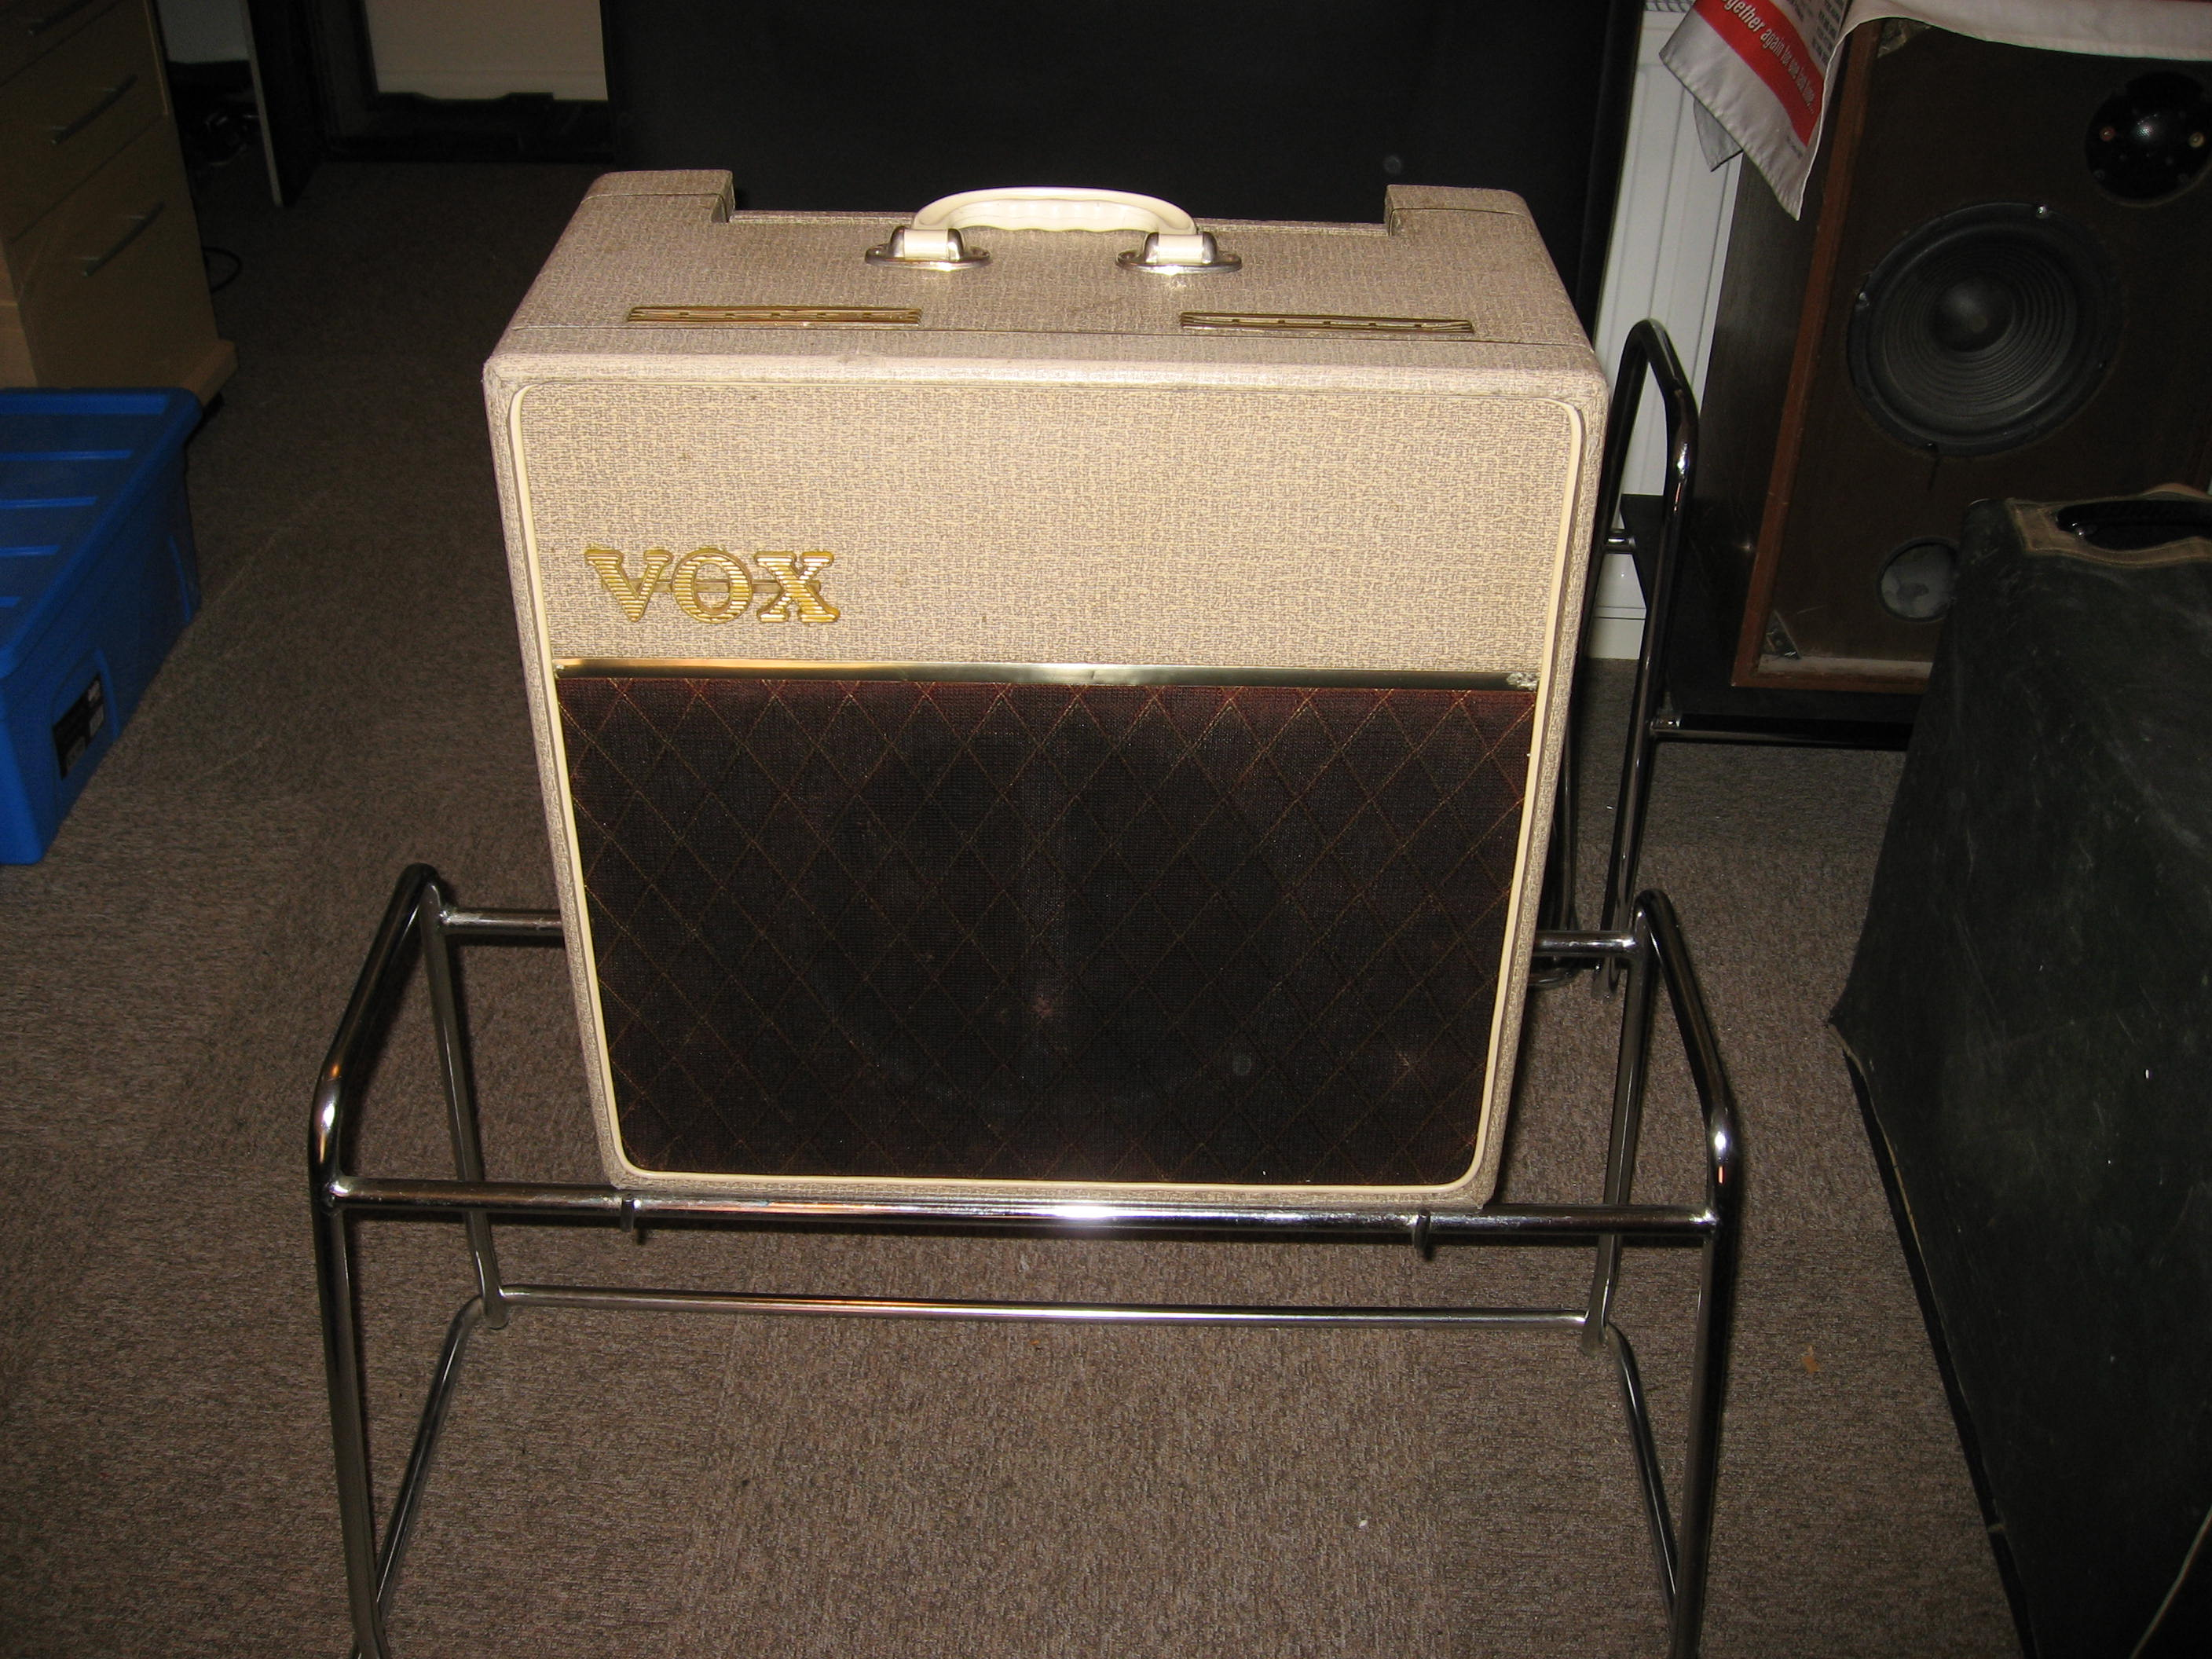 Vintage Vox amplifier collection